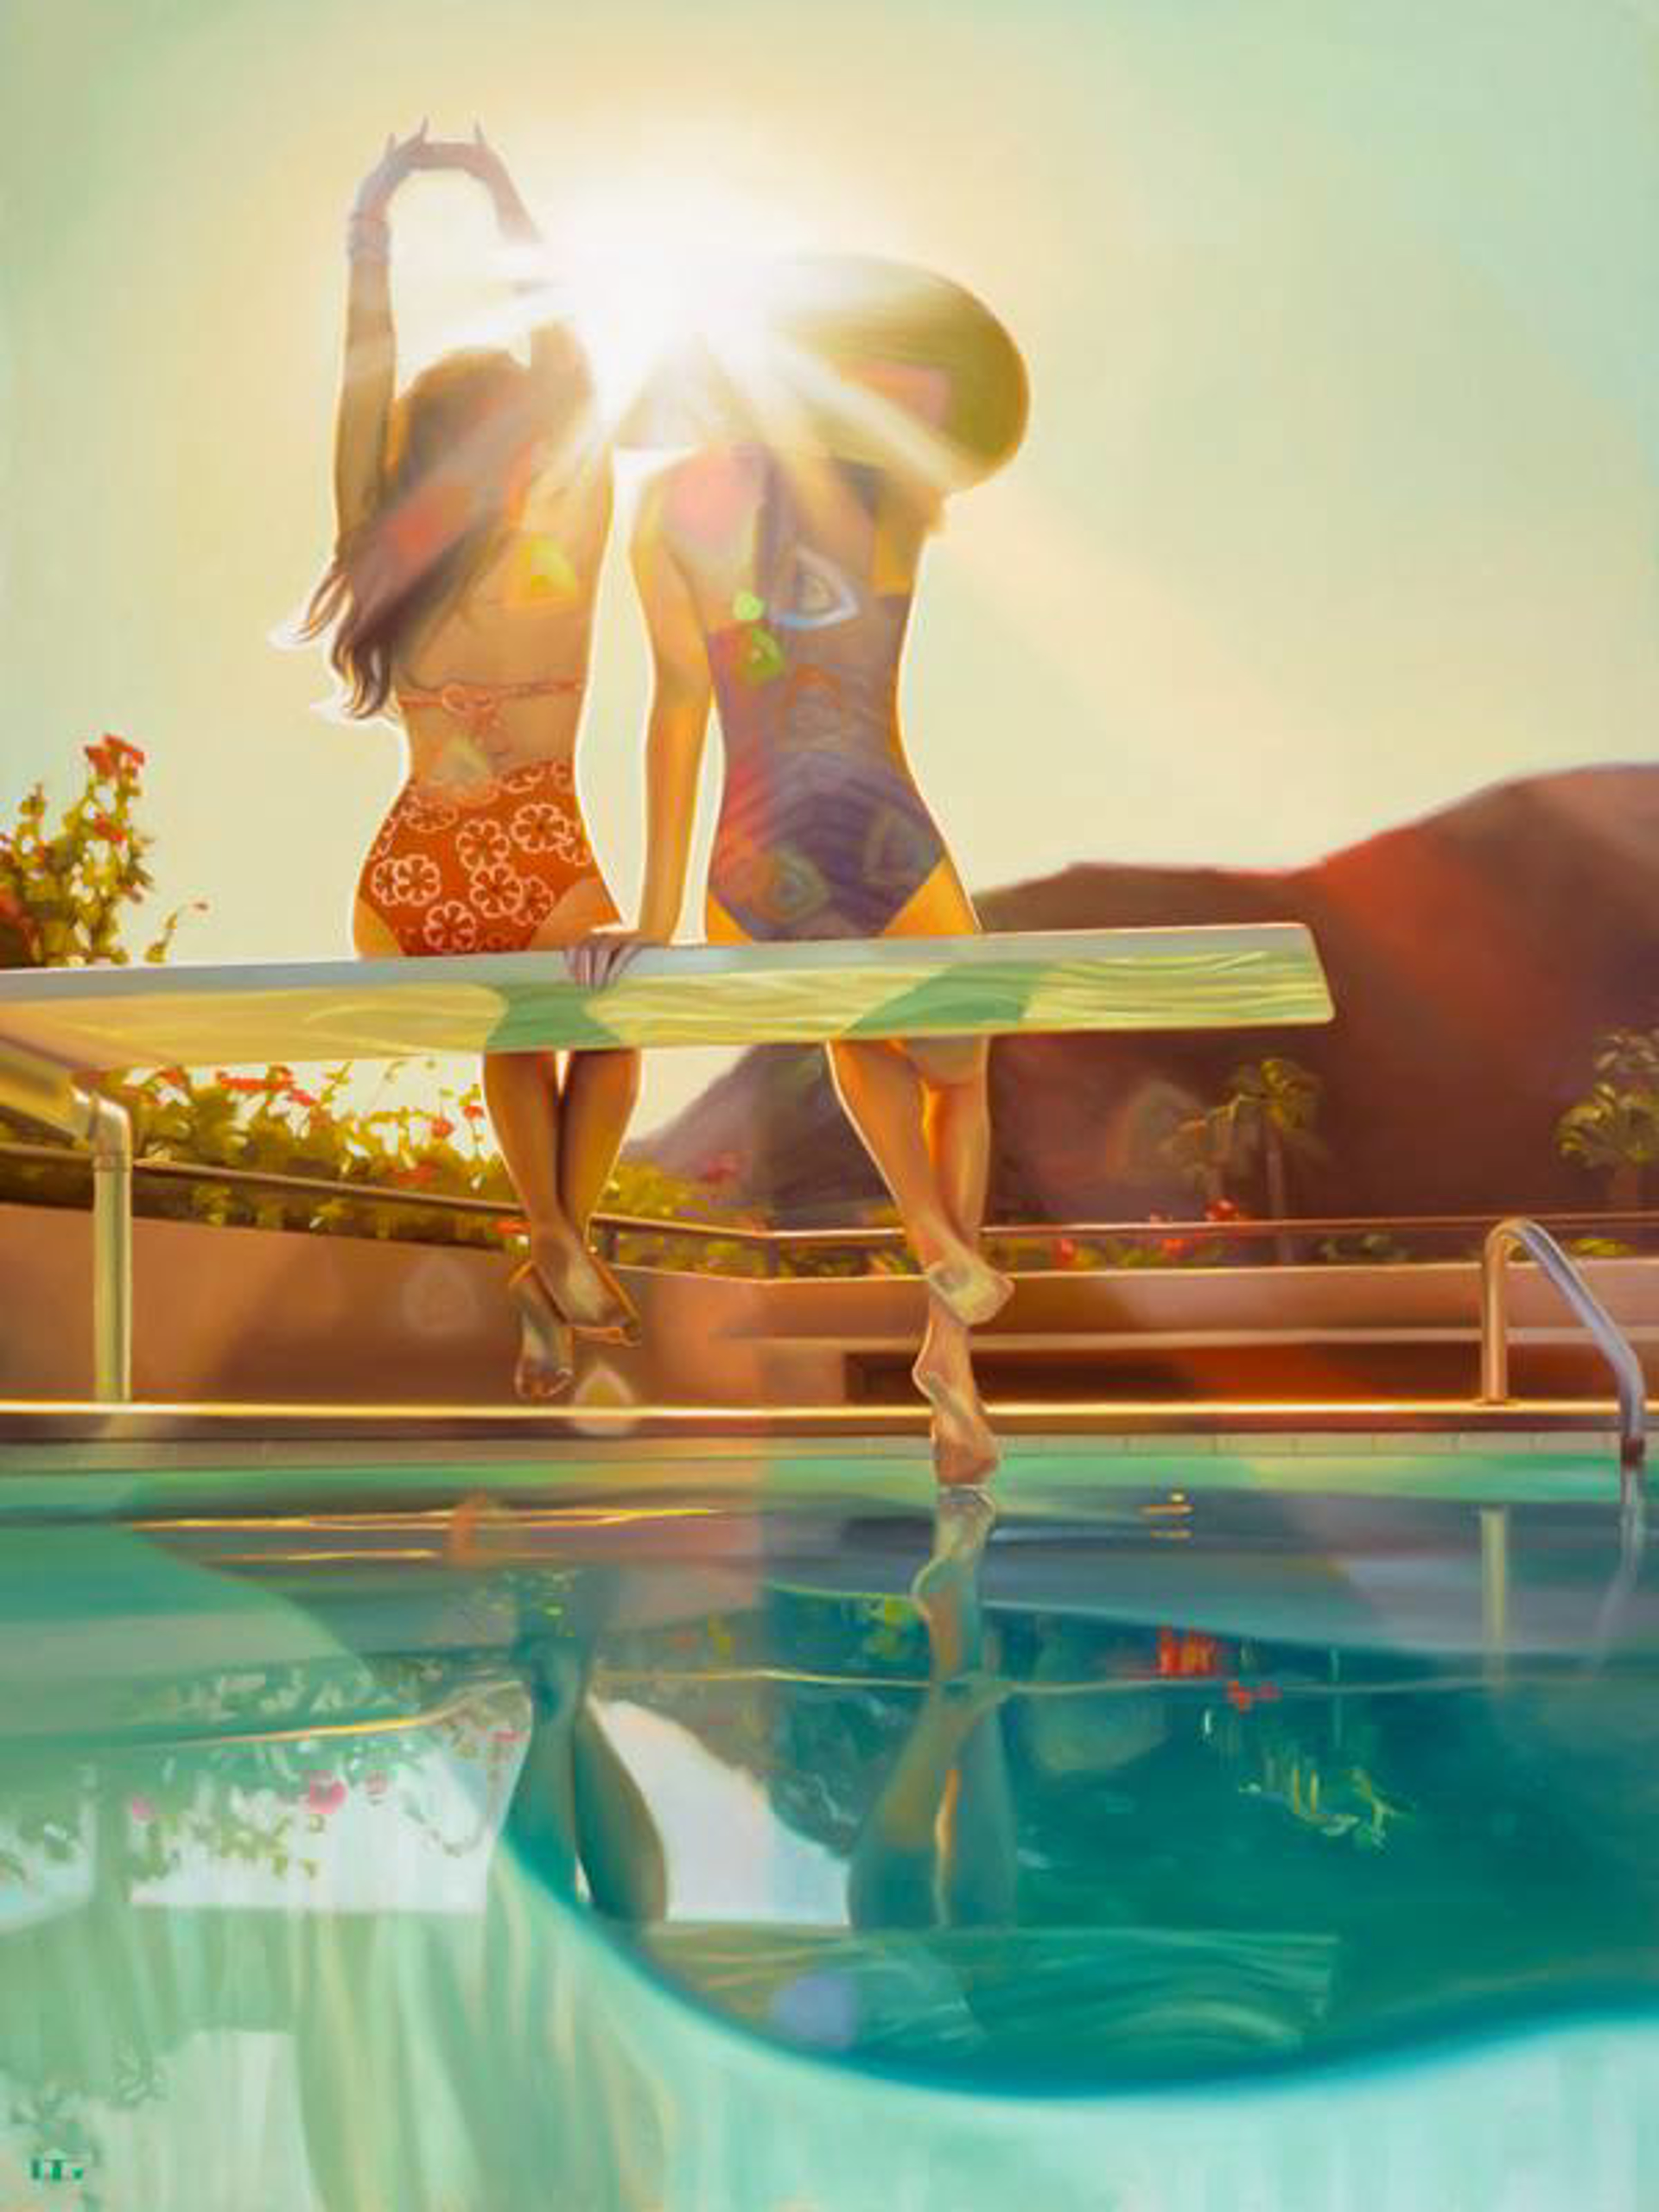 Sun Worshippers (S/N) by Carrie Graber